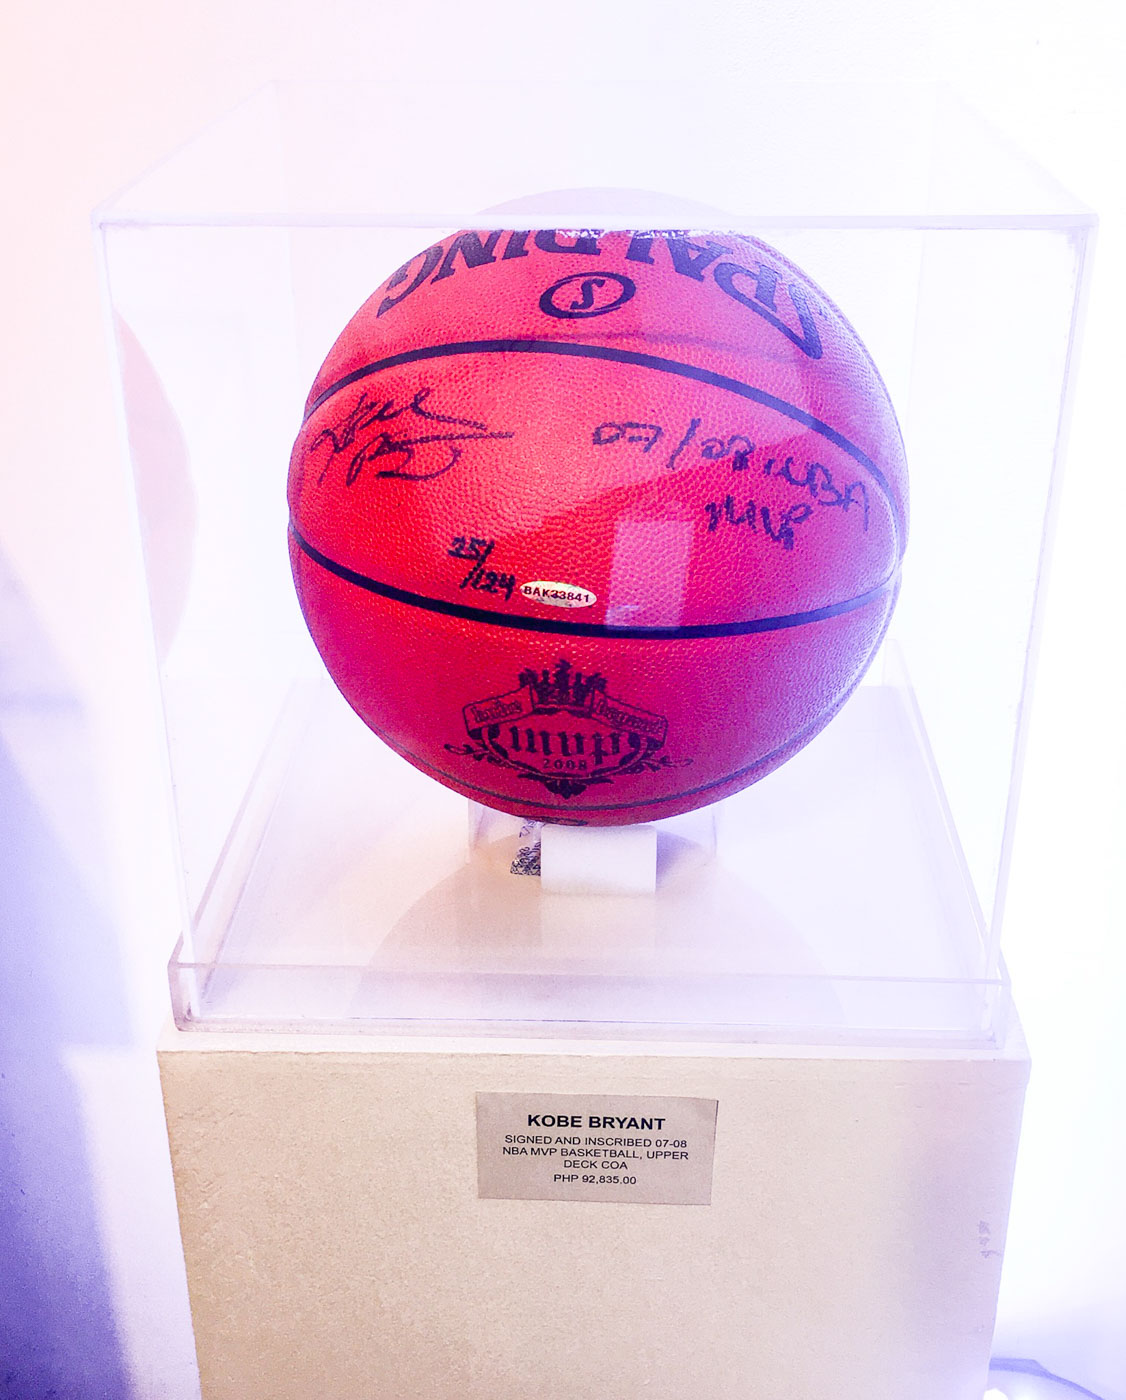 REAL DEAL. Kobe Bryant signed and inscribed the Spalding basketball when he was crowned the 2007-2008 Season MVP. Photo by Beatrice Go/Rappler